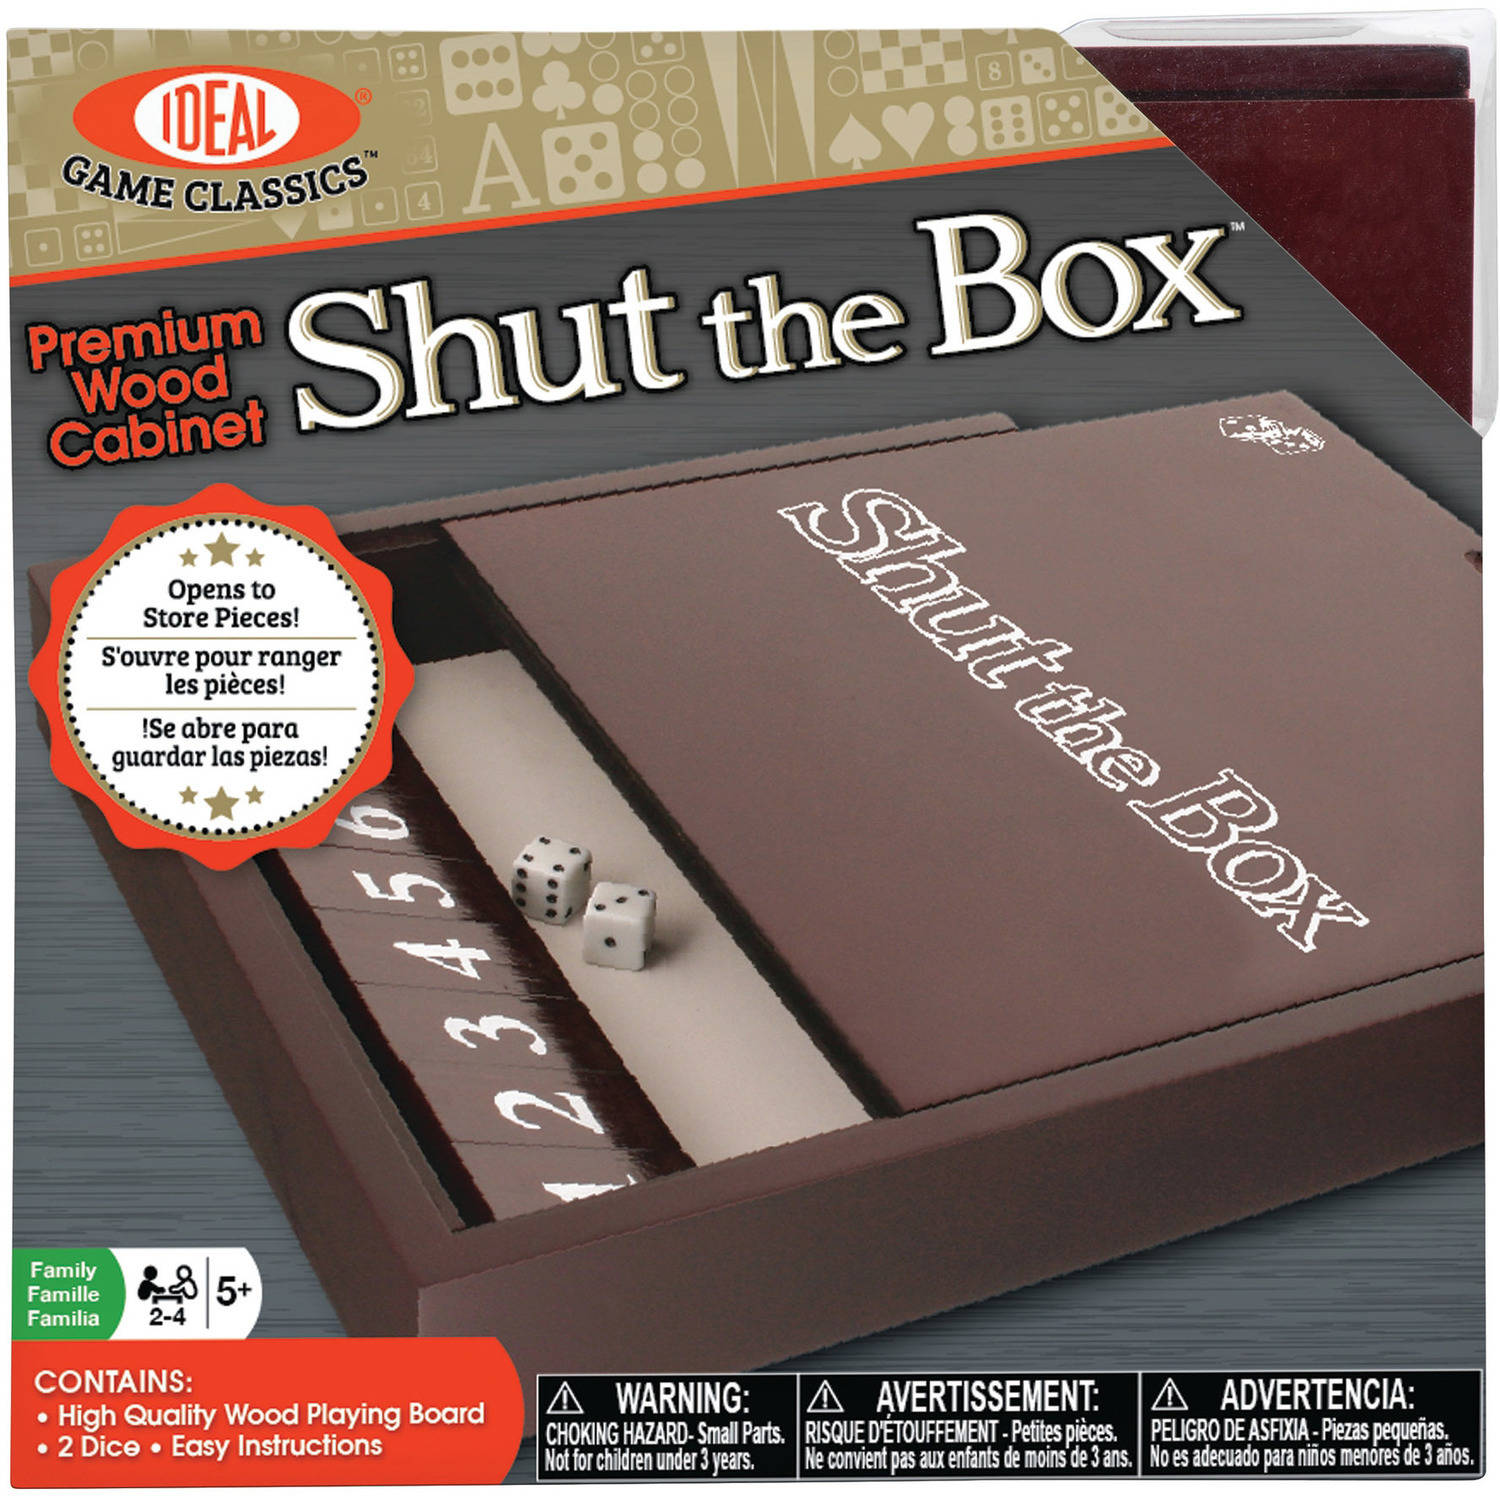 Ideal Premium Wood Cabinet Shut the Box